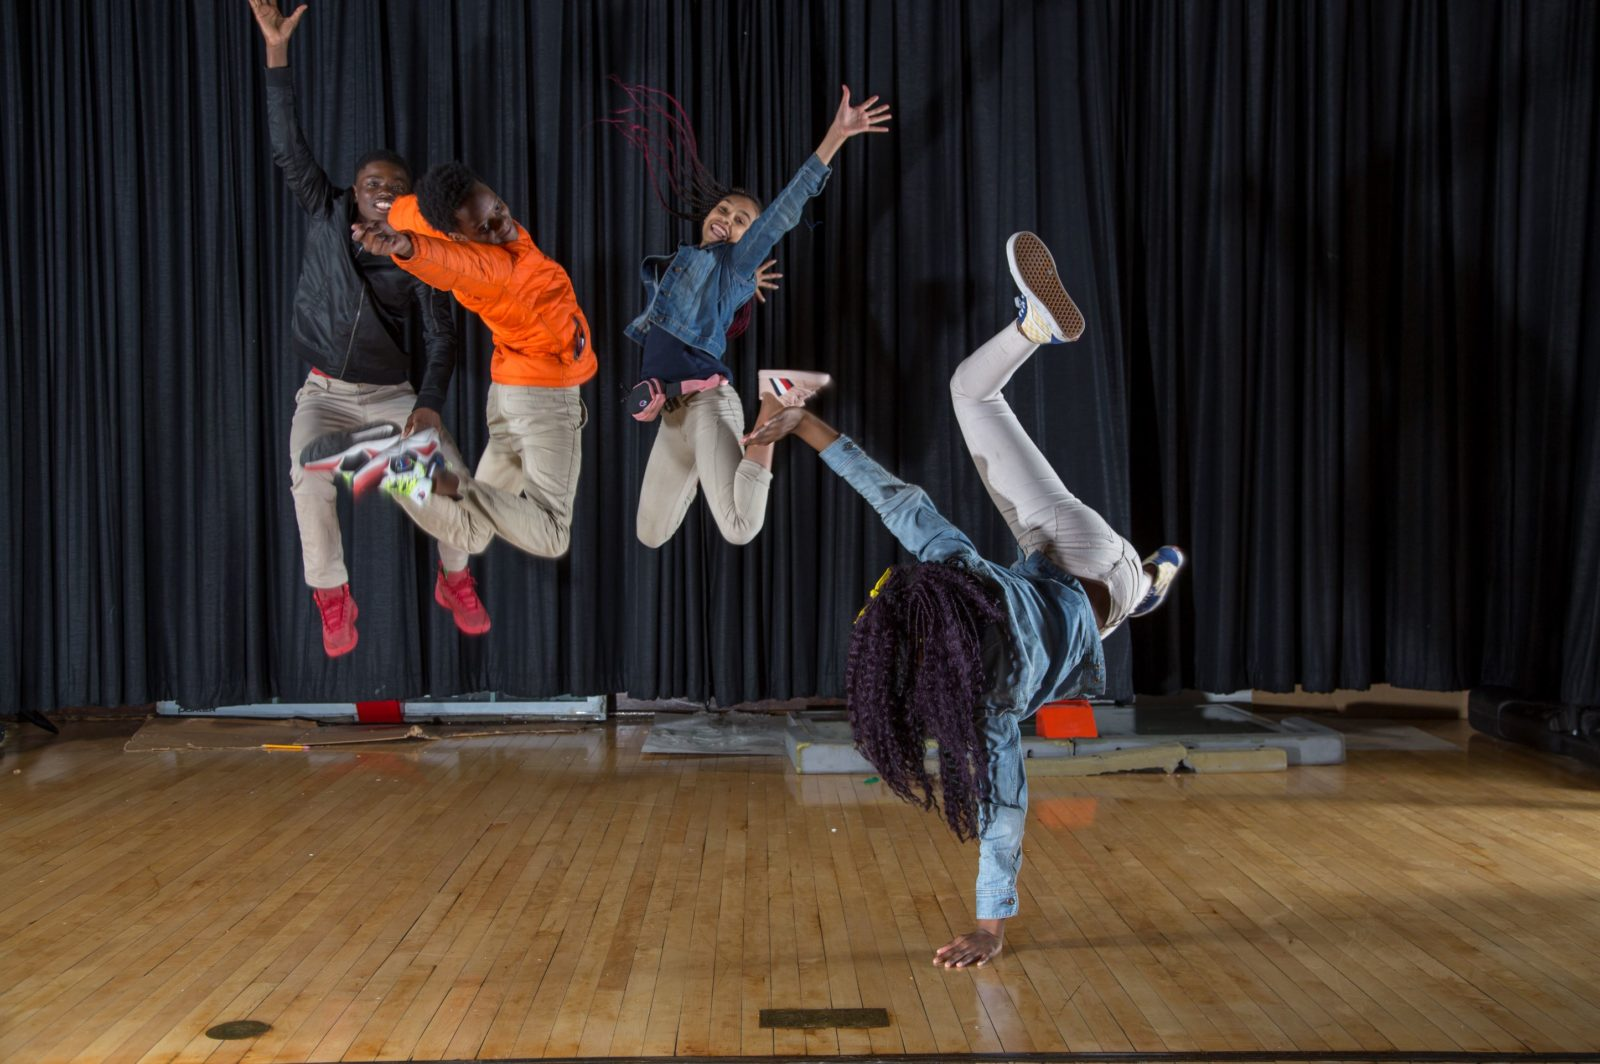 photo by Cecil McDonald Jr. from moment in time exhibition of 8th grade students jumping to signify joy at art on sedgwick